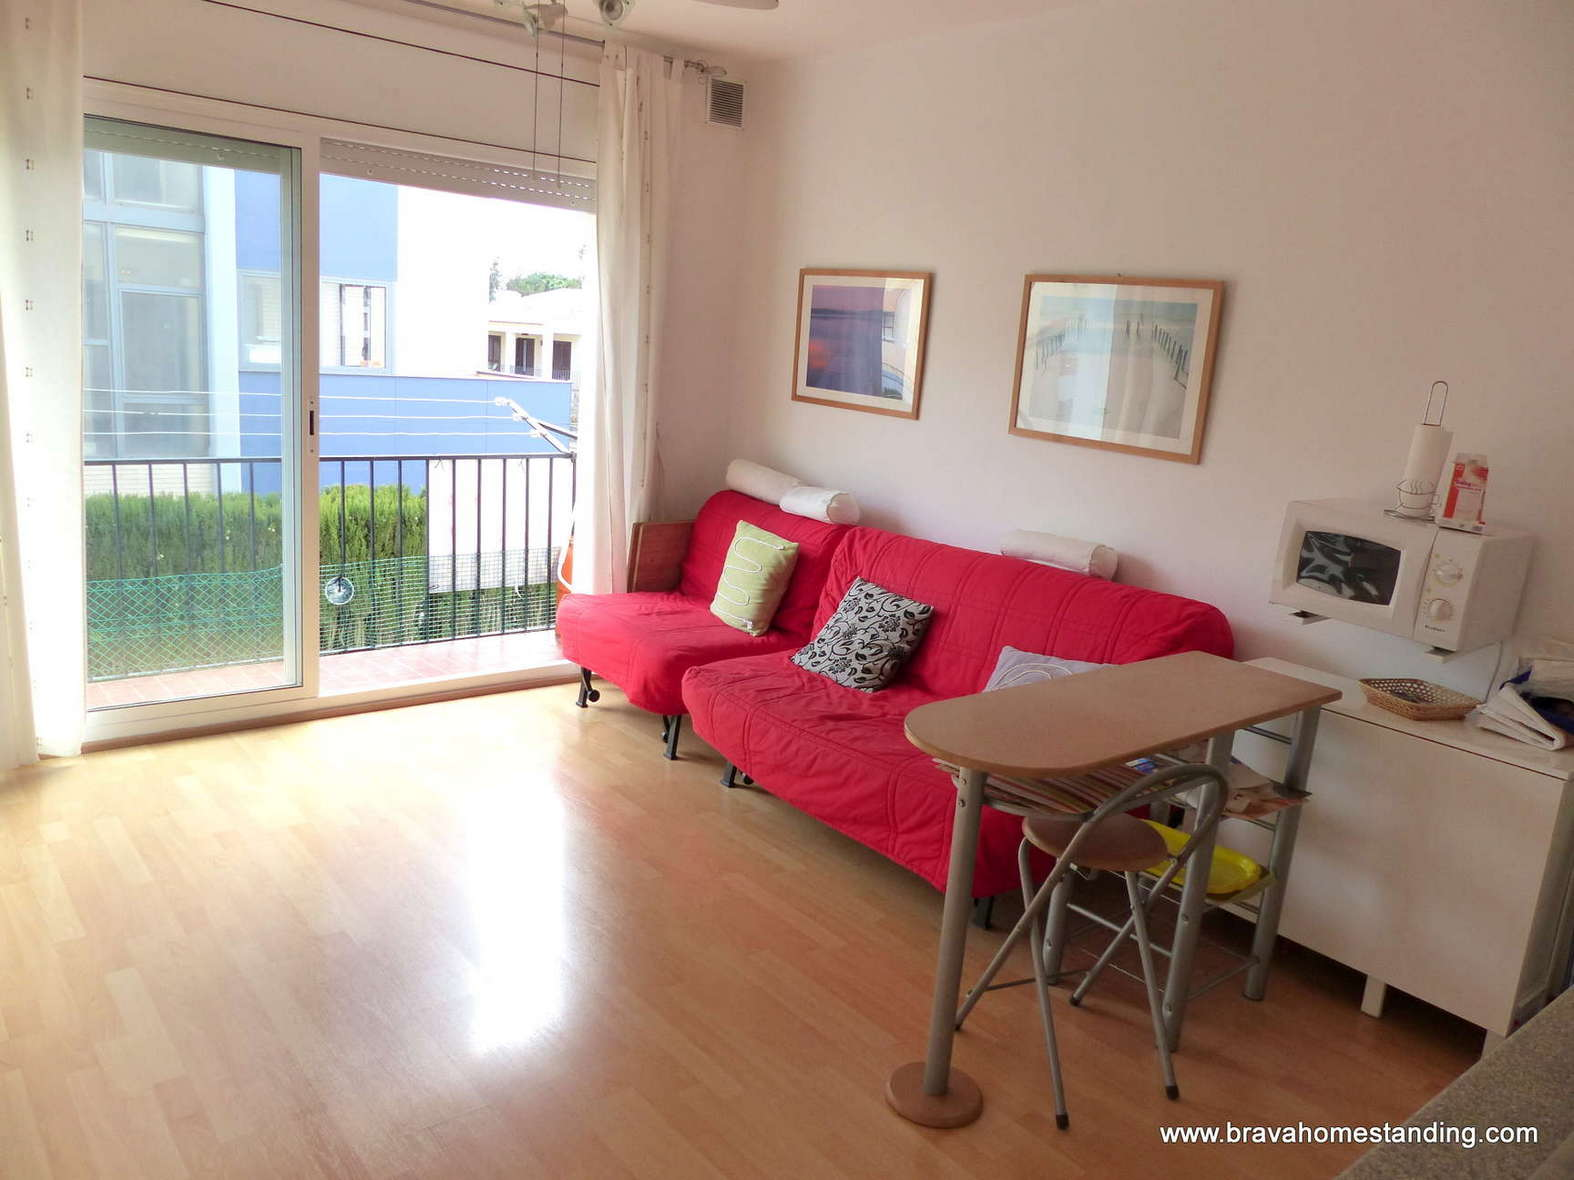 LOVELY ONE BEDROOM APARTMENT NEAR THE BEACH FOR SALE IN ROSAS